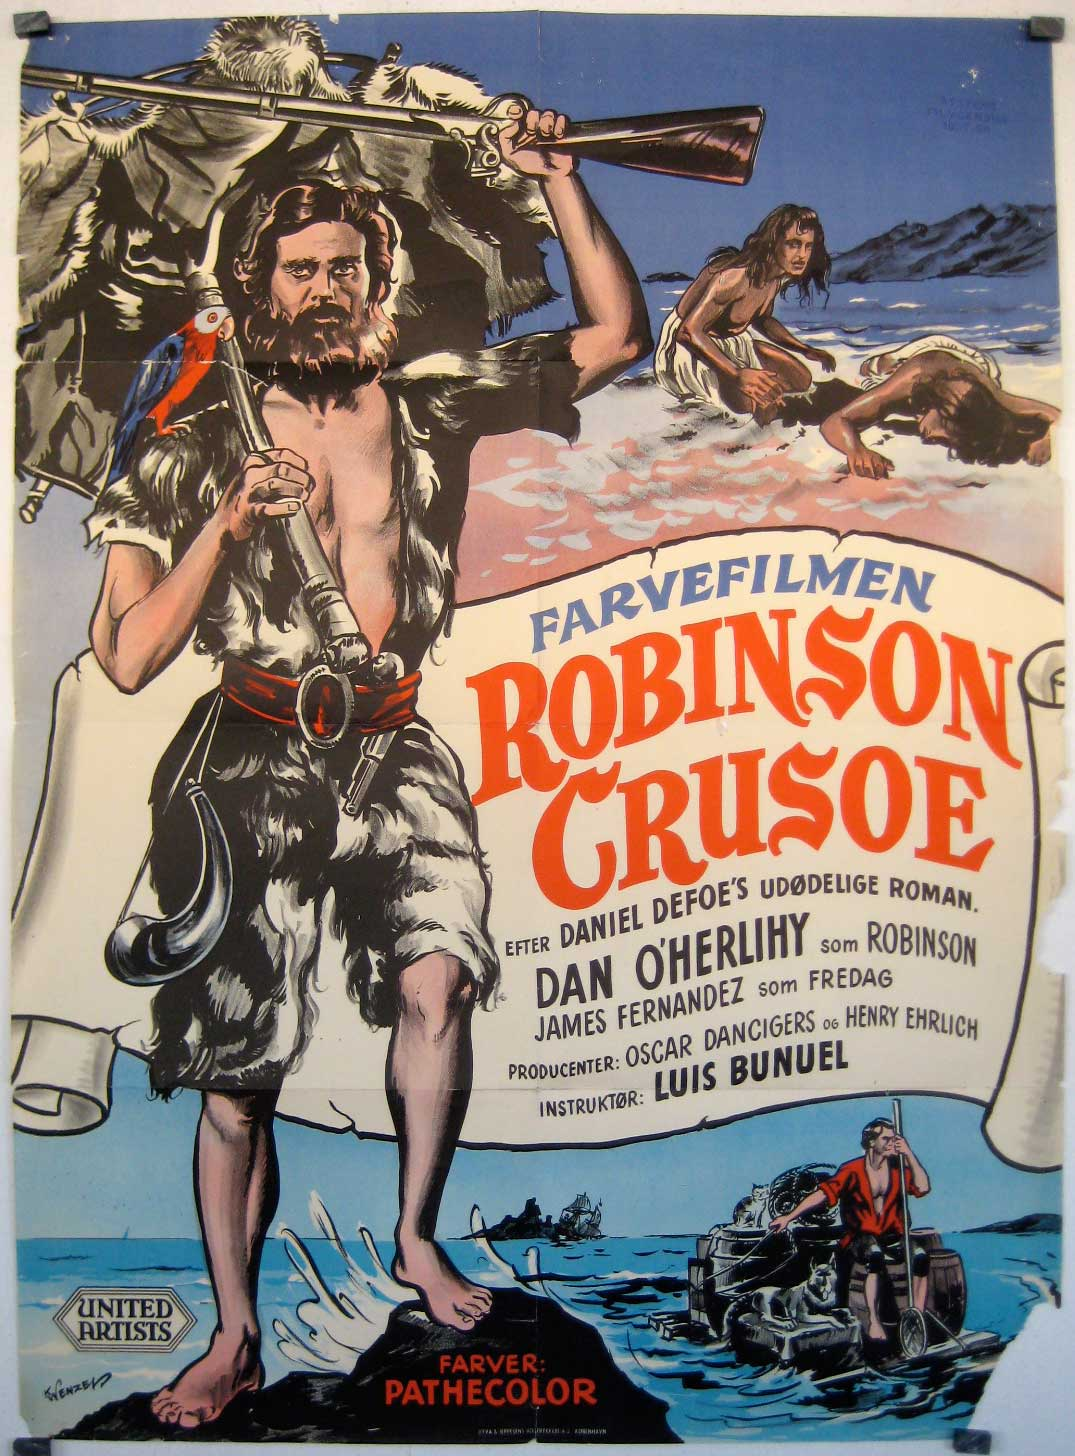 robinson crusoe themes essay The amazing story i read was the tale of robinson crusoe tags: english essays, literature essays, robinson crusoe analysis, robinson crusoe essay topics.